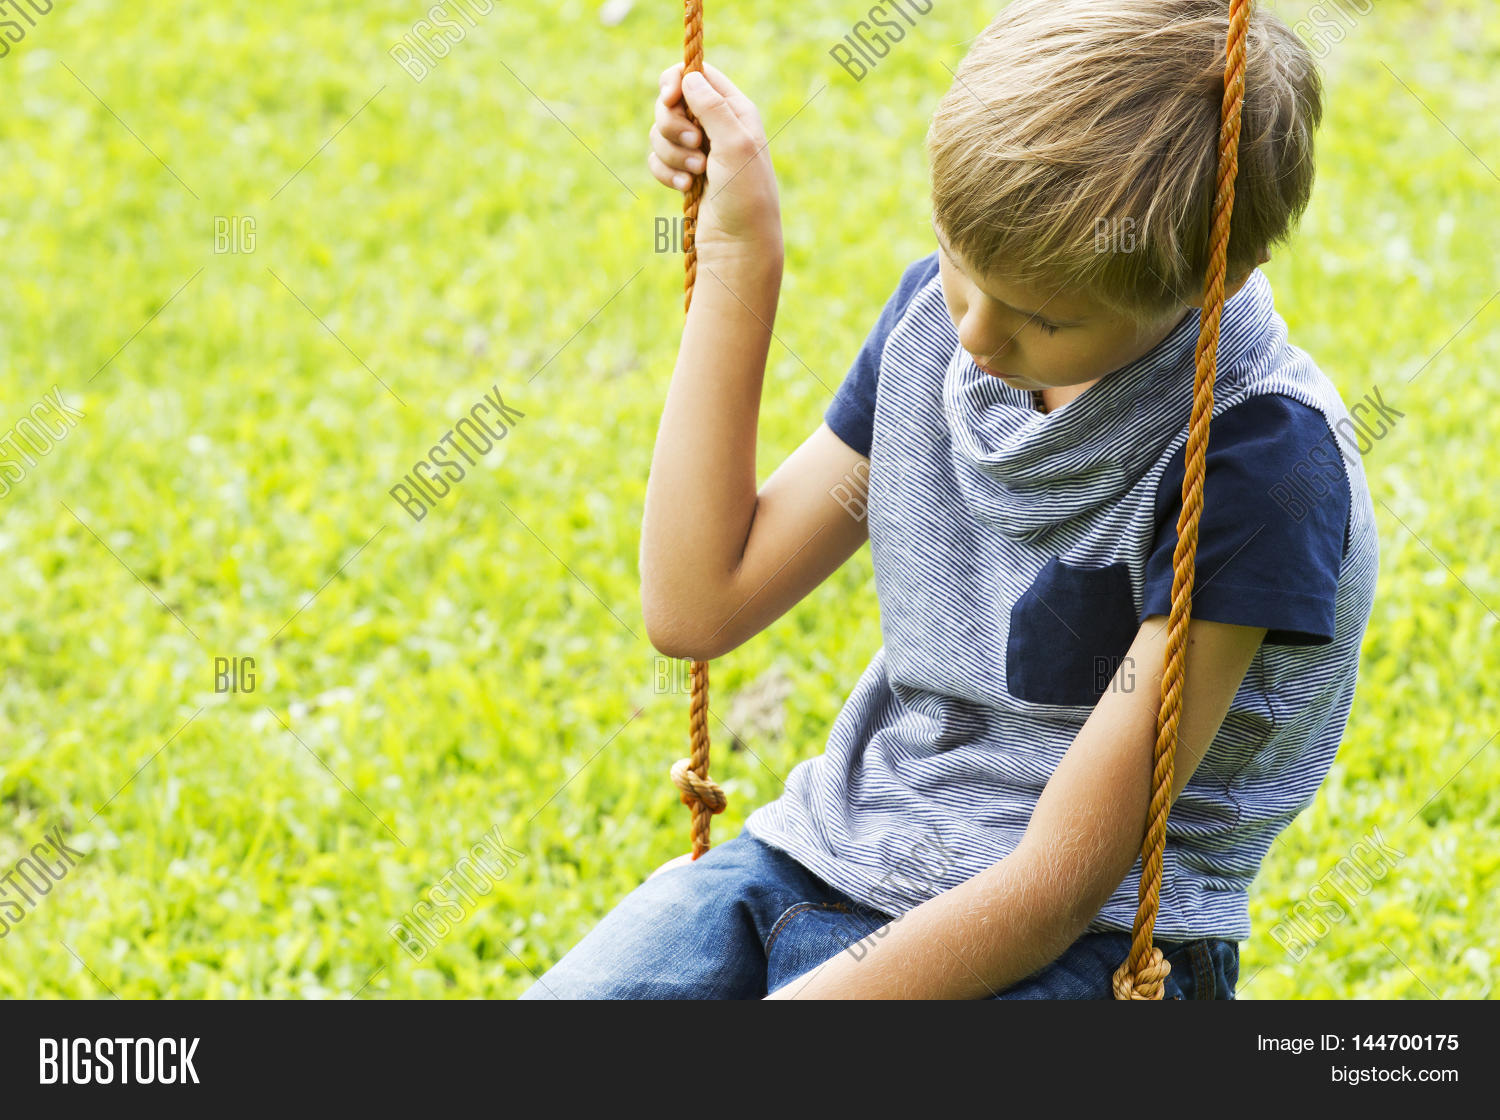 Sad lonely boy sitting on swings at outdoor playground close up sad lonely depressed